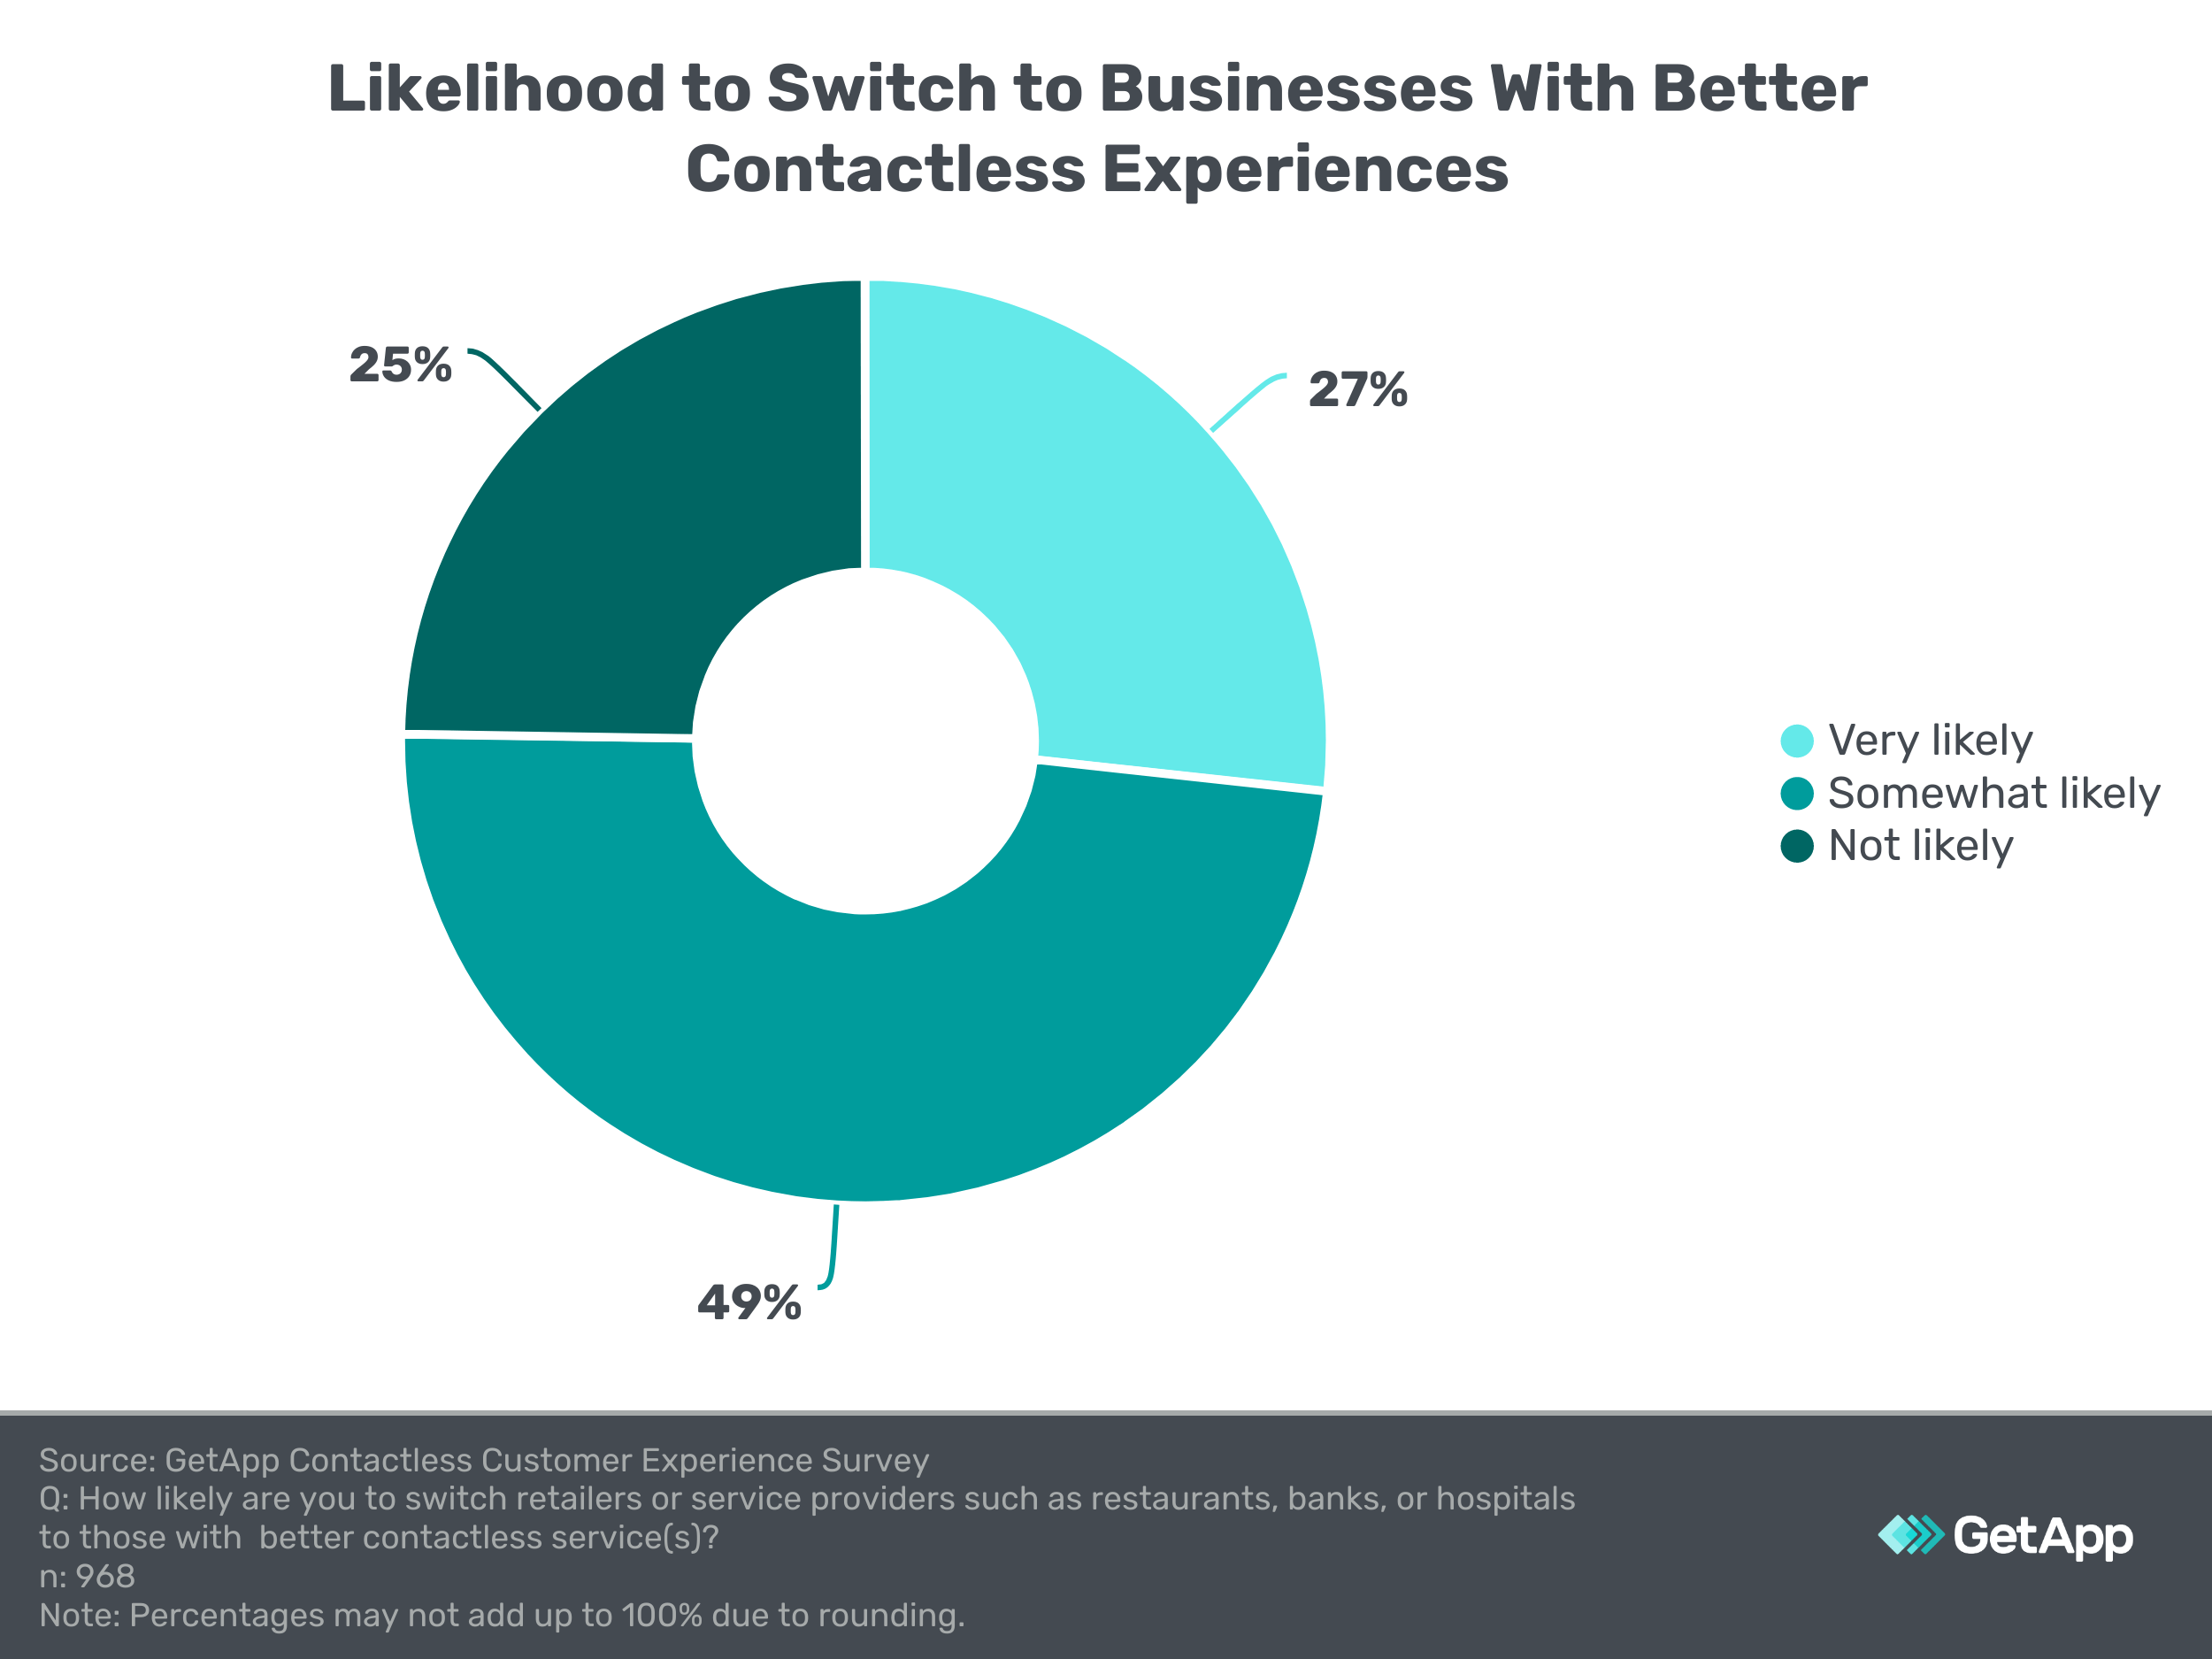 pie chart showing the likelihood of survey respondents to switch businesses for a better contactless experience